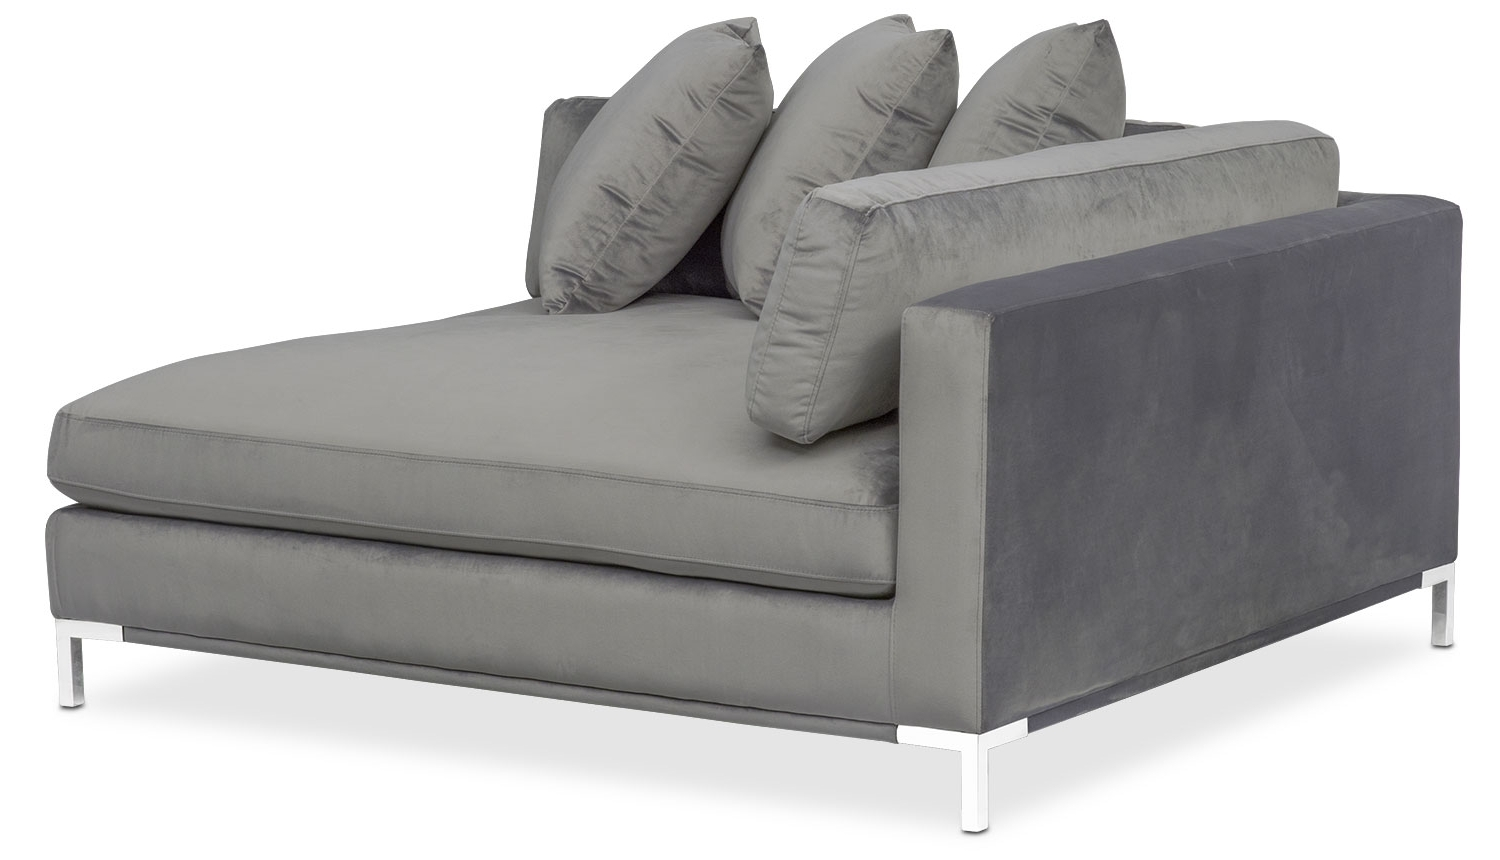 Moda 3 Piece Sectional With Right Facing Chaise – Gray (View 12 of 15)